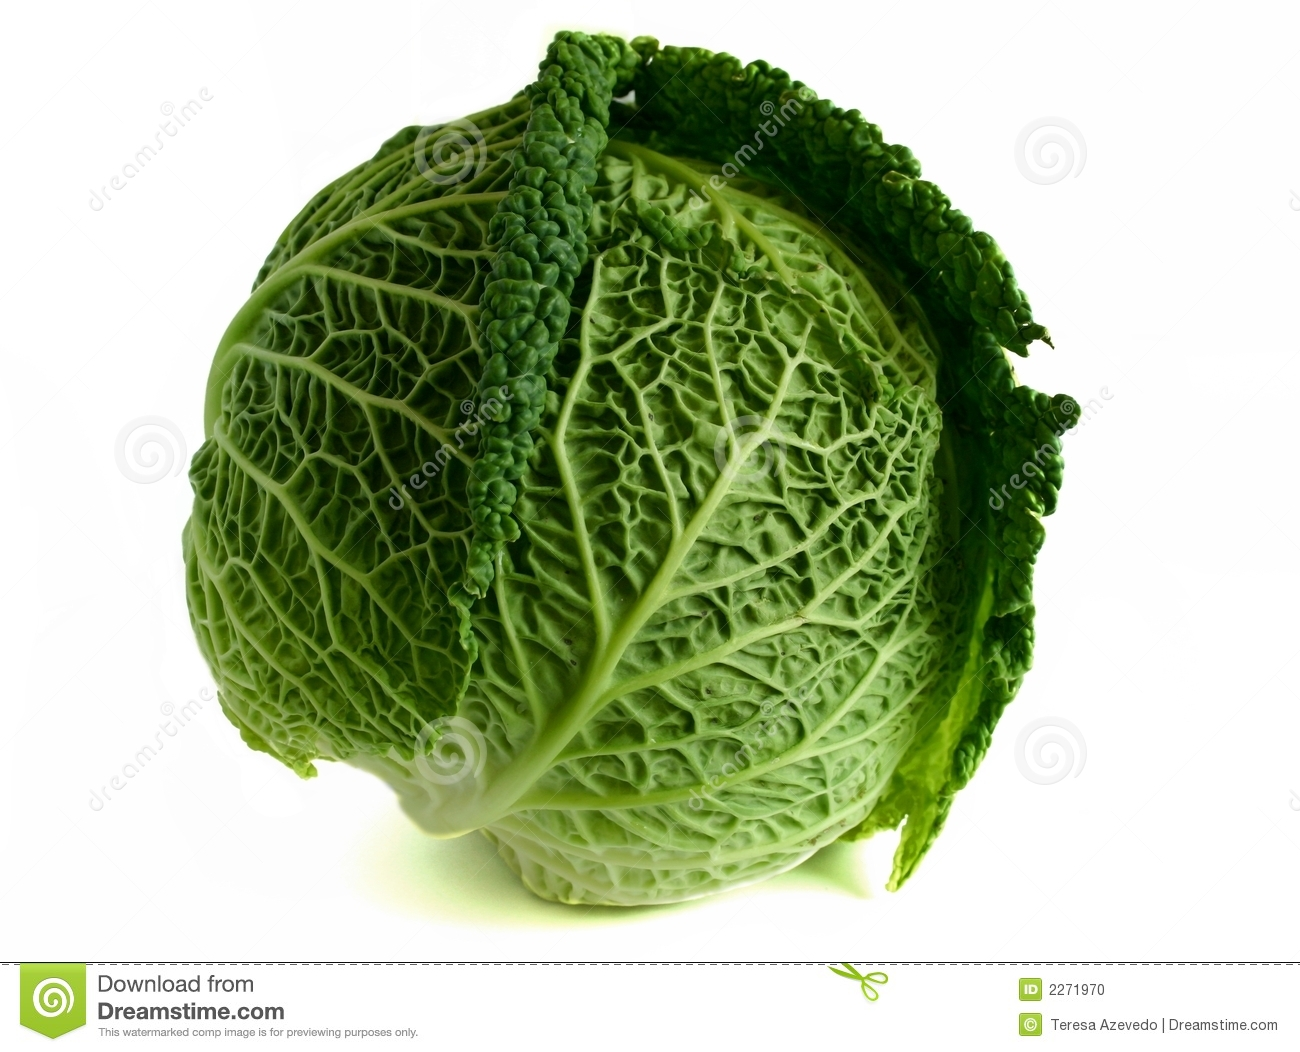 Savoy cabbage isolated over white background.